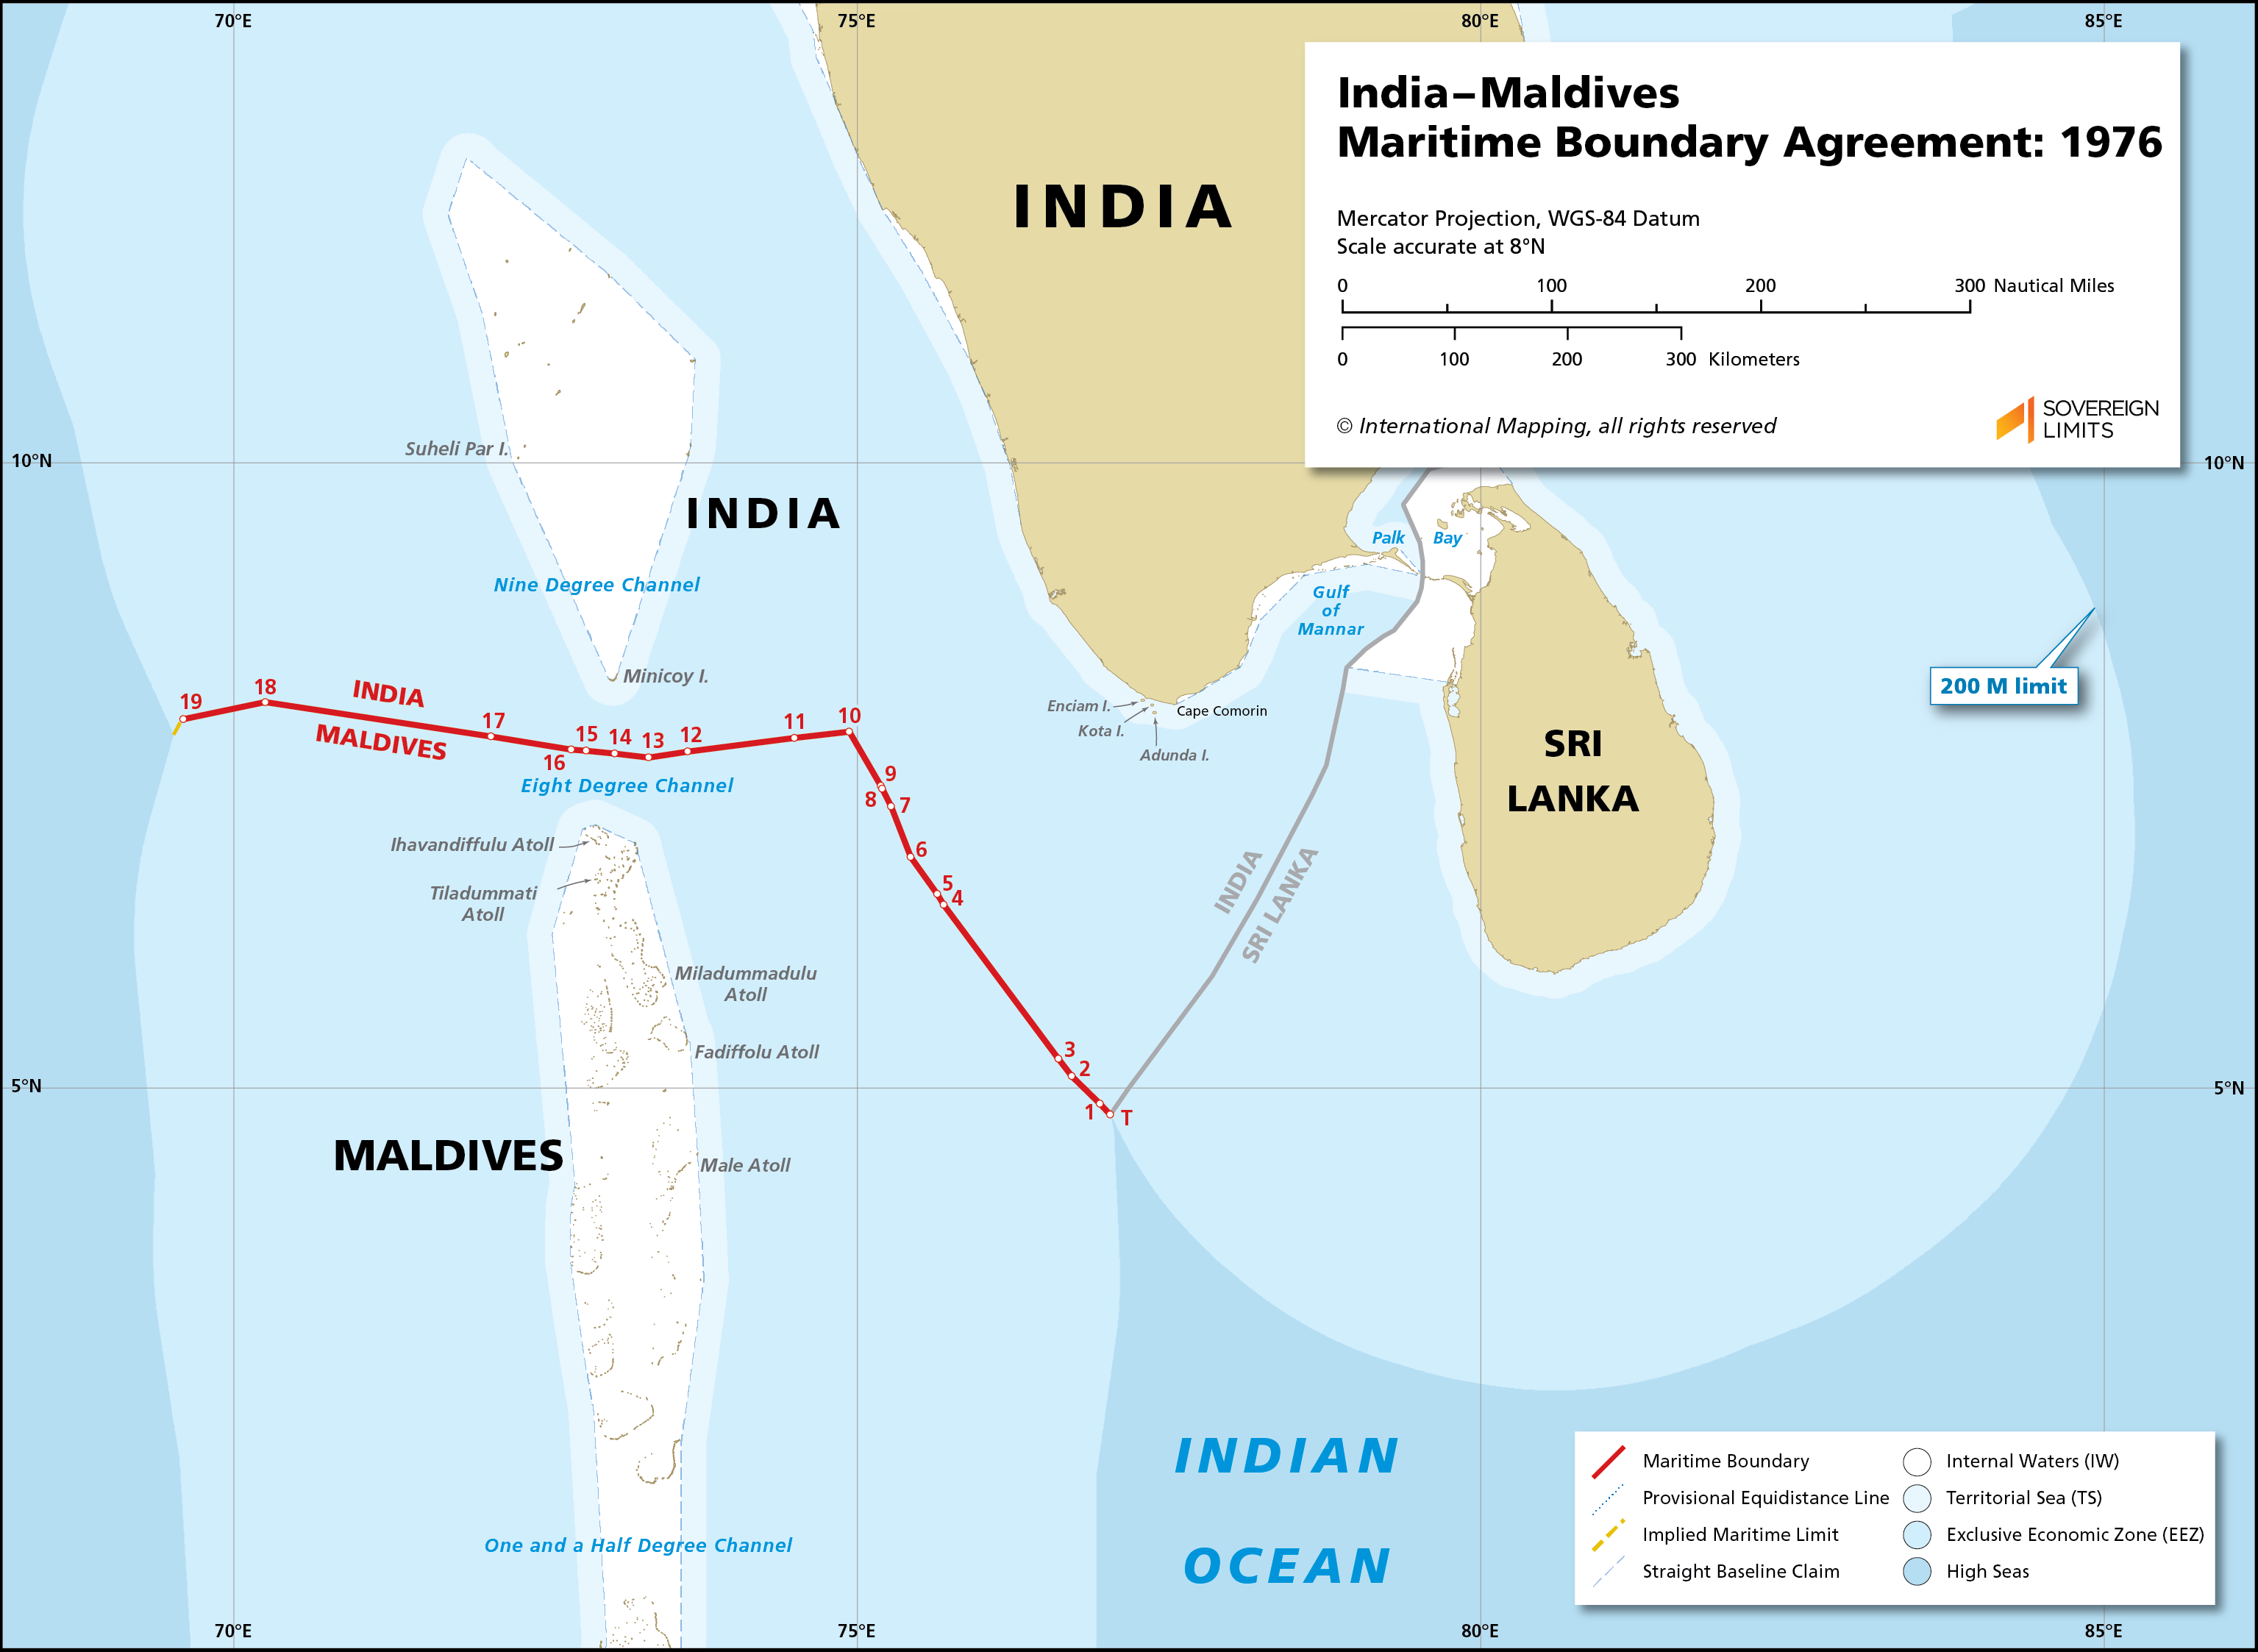 Map showing the maritime boundary between India and Maldives